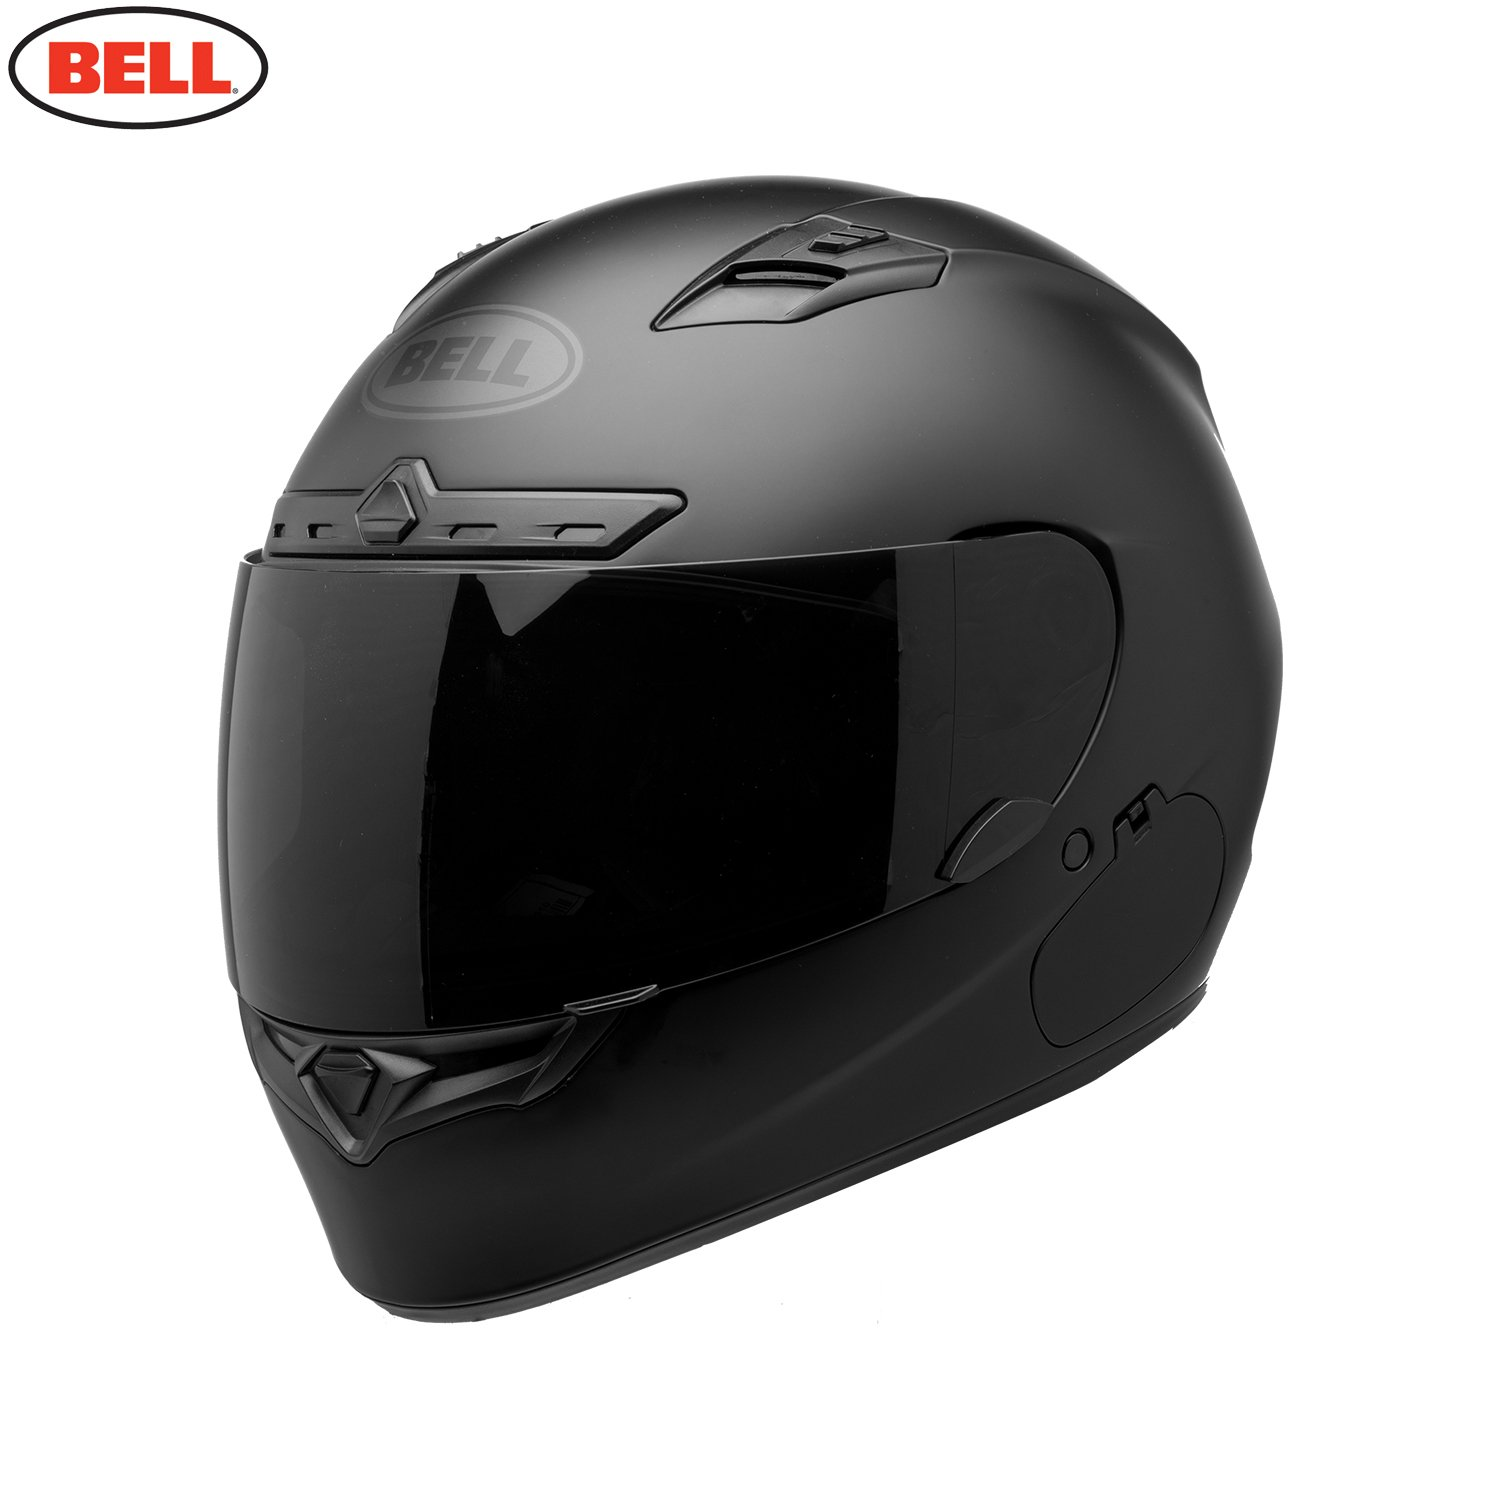 Bell 7093144 Casco per Moto, Blackout Black Matt, Taglia L BRG Sports C/O E.S.LOG (Evolution Stockage Logistique)